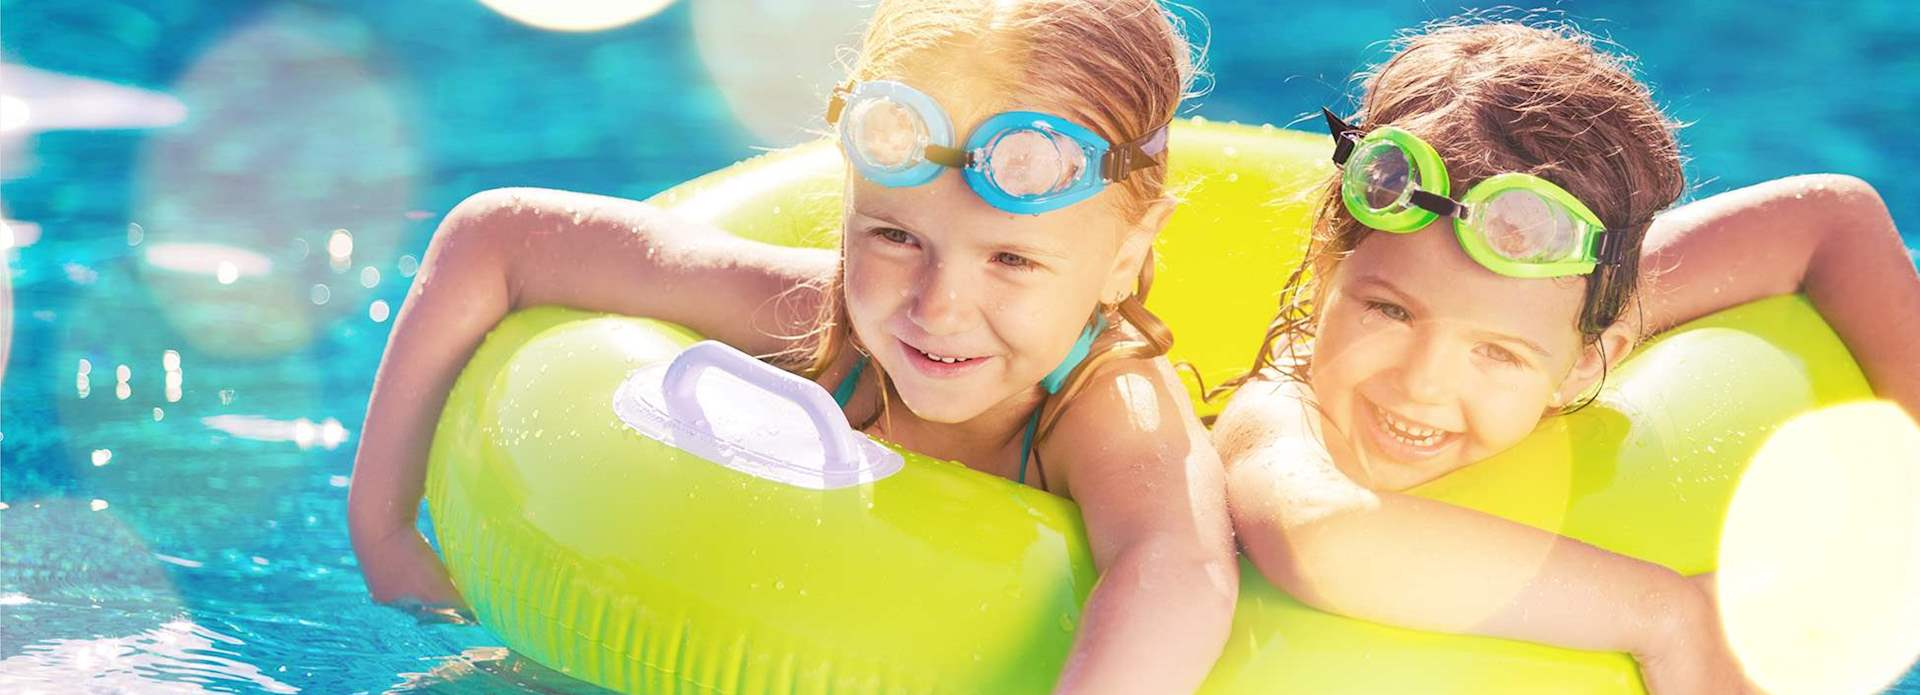 Kids Enjoy in Swimmingpool in Orlando, Florida Resort